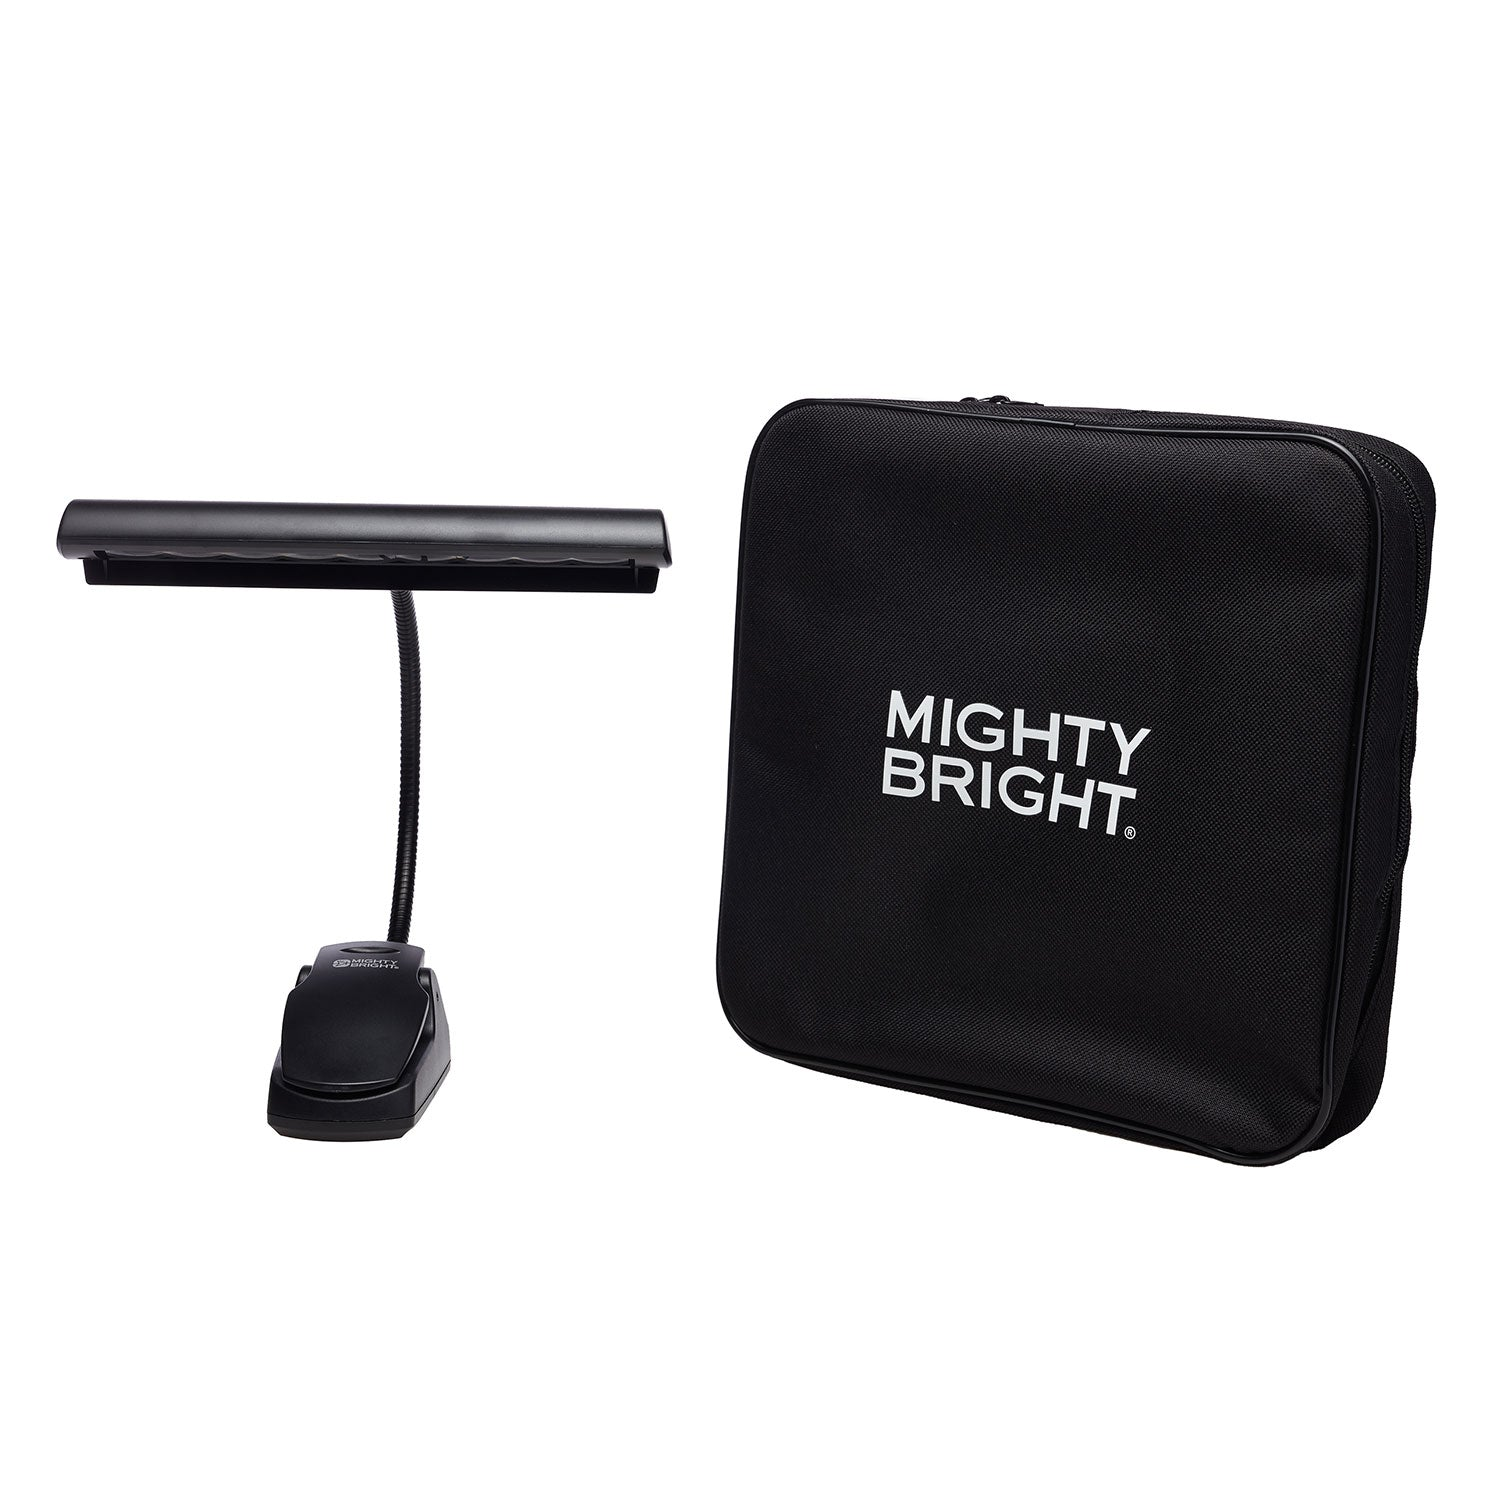 Orchestra Music Stand Light with AC Adapter and Gig Bag by Mighty Bright - front view with gig bag